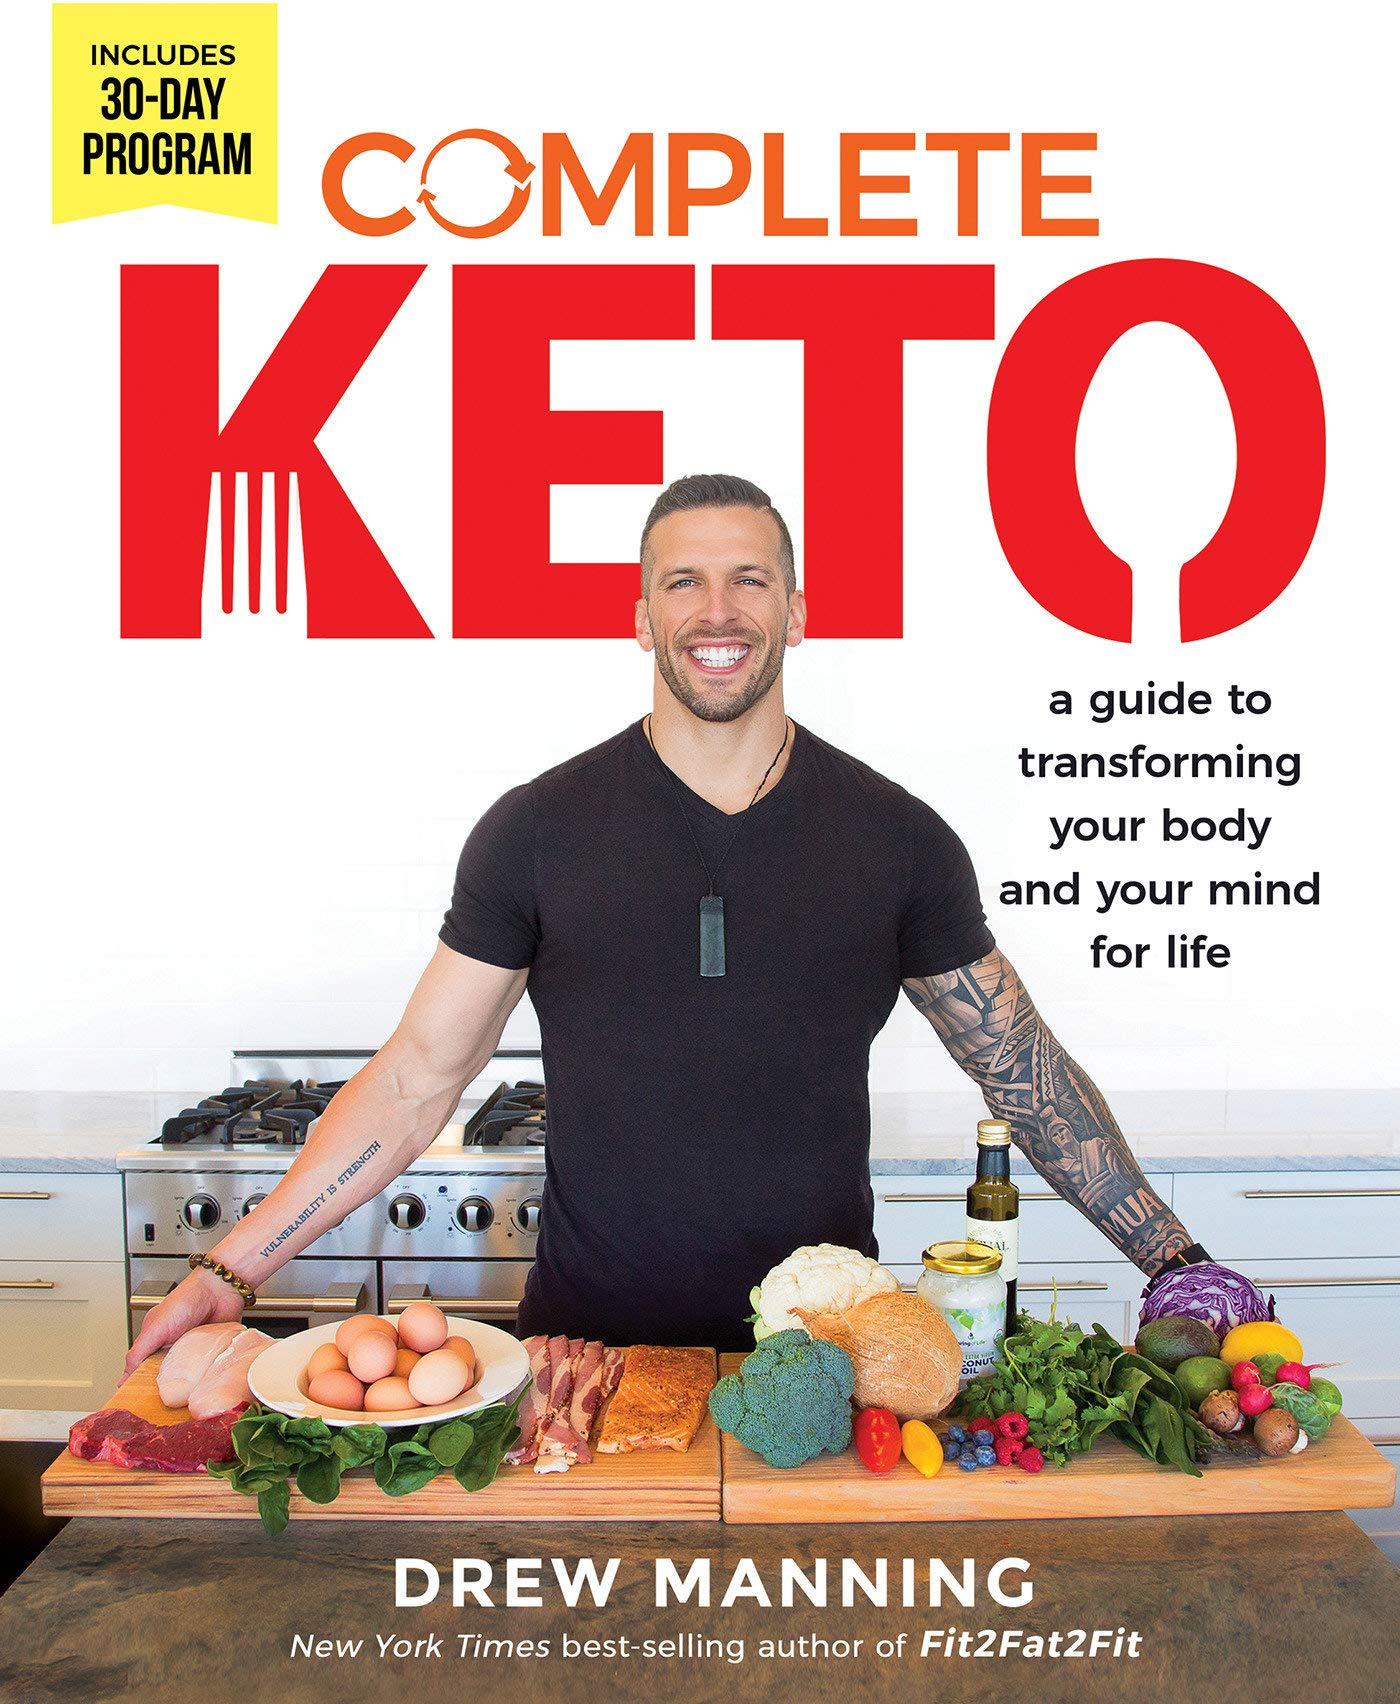 Complete Keto Guide Transforming Your product image